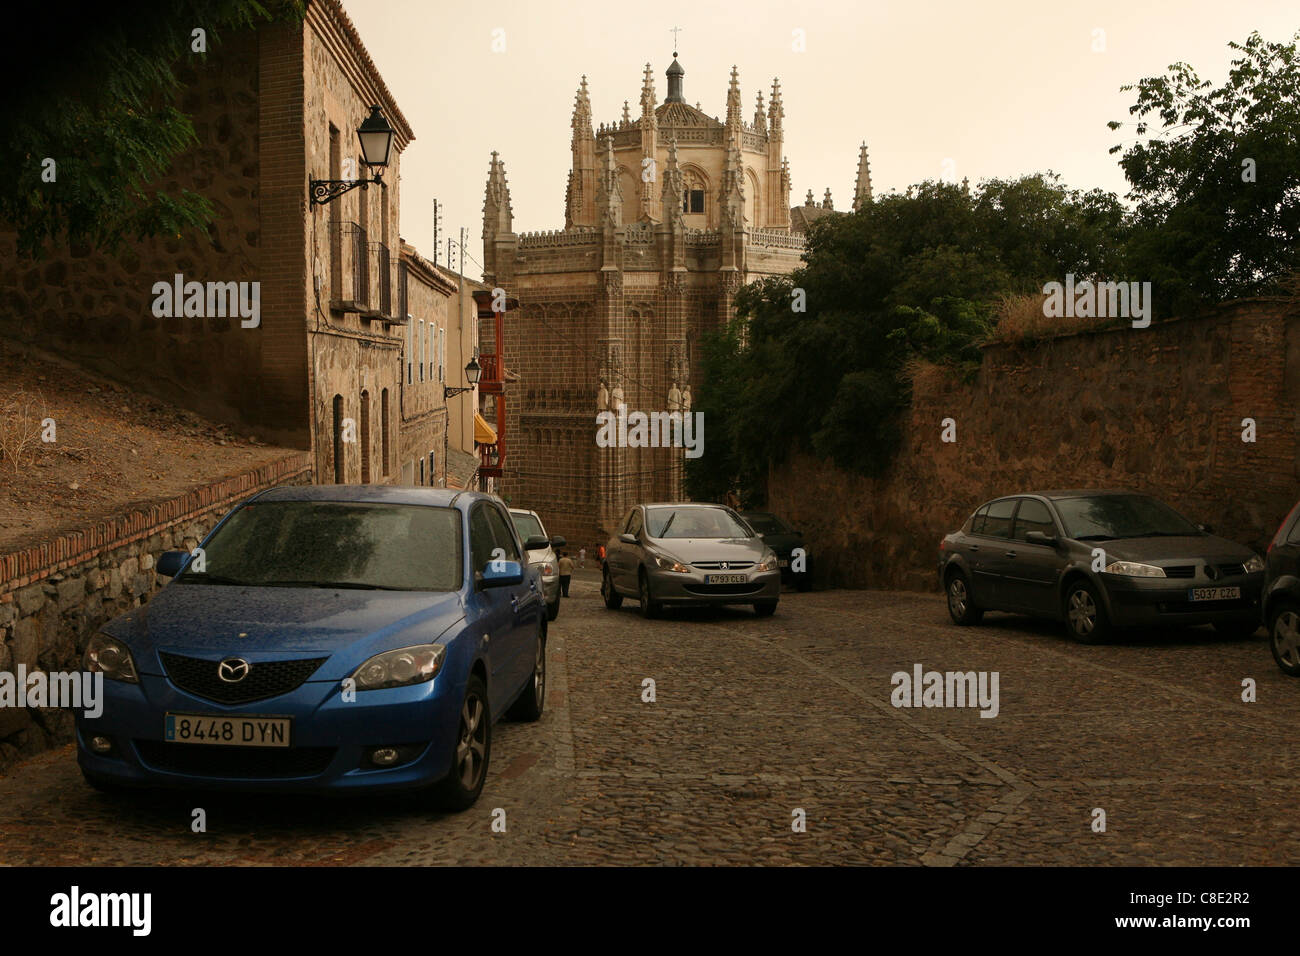 Gothic Church of San Juan de los Reyes in Toledo, Spain. - Stock Image